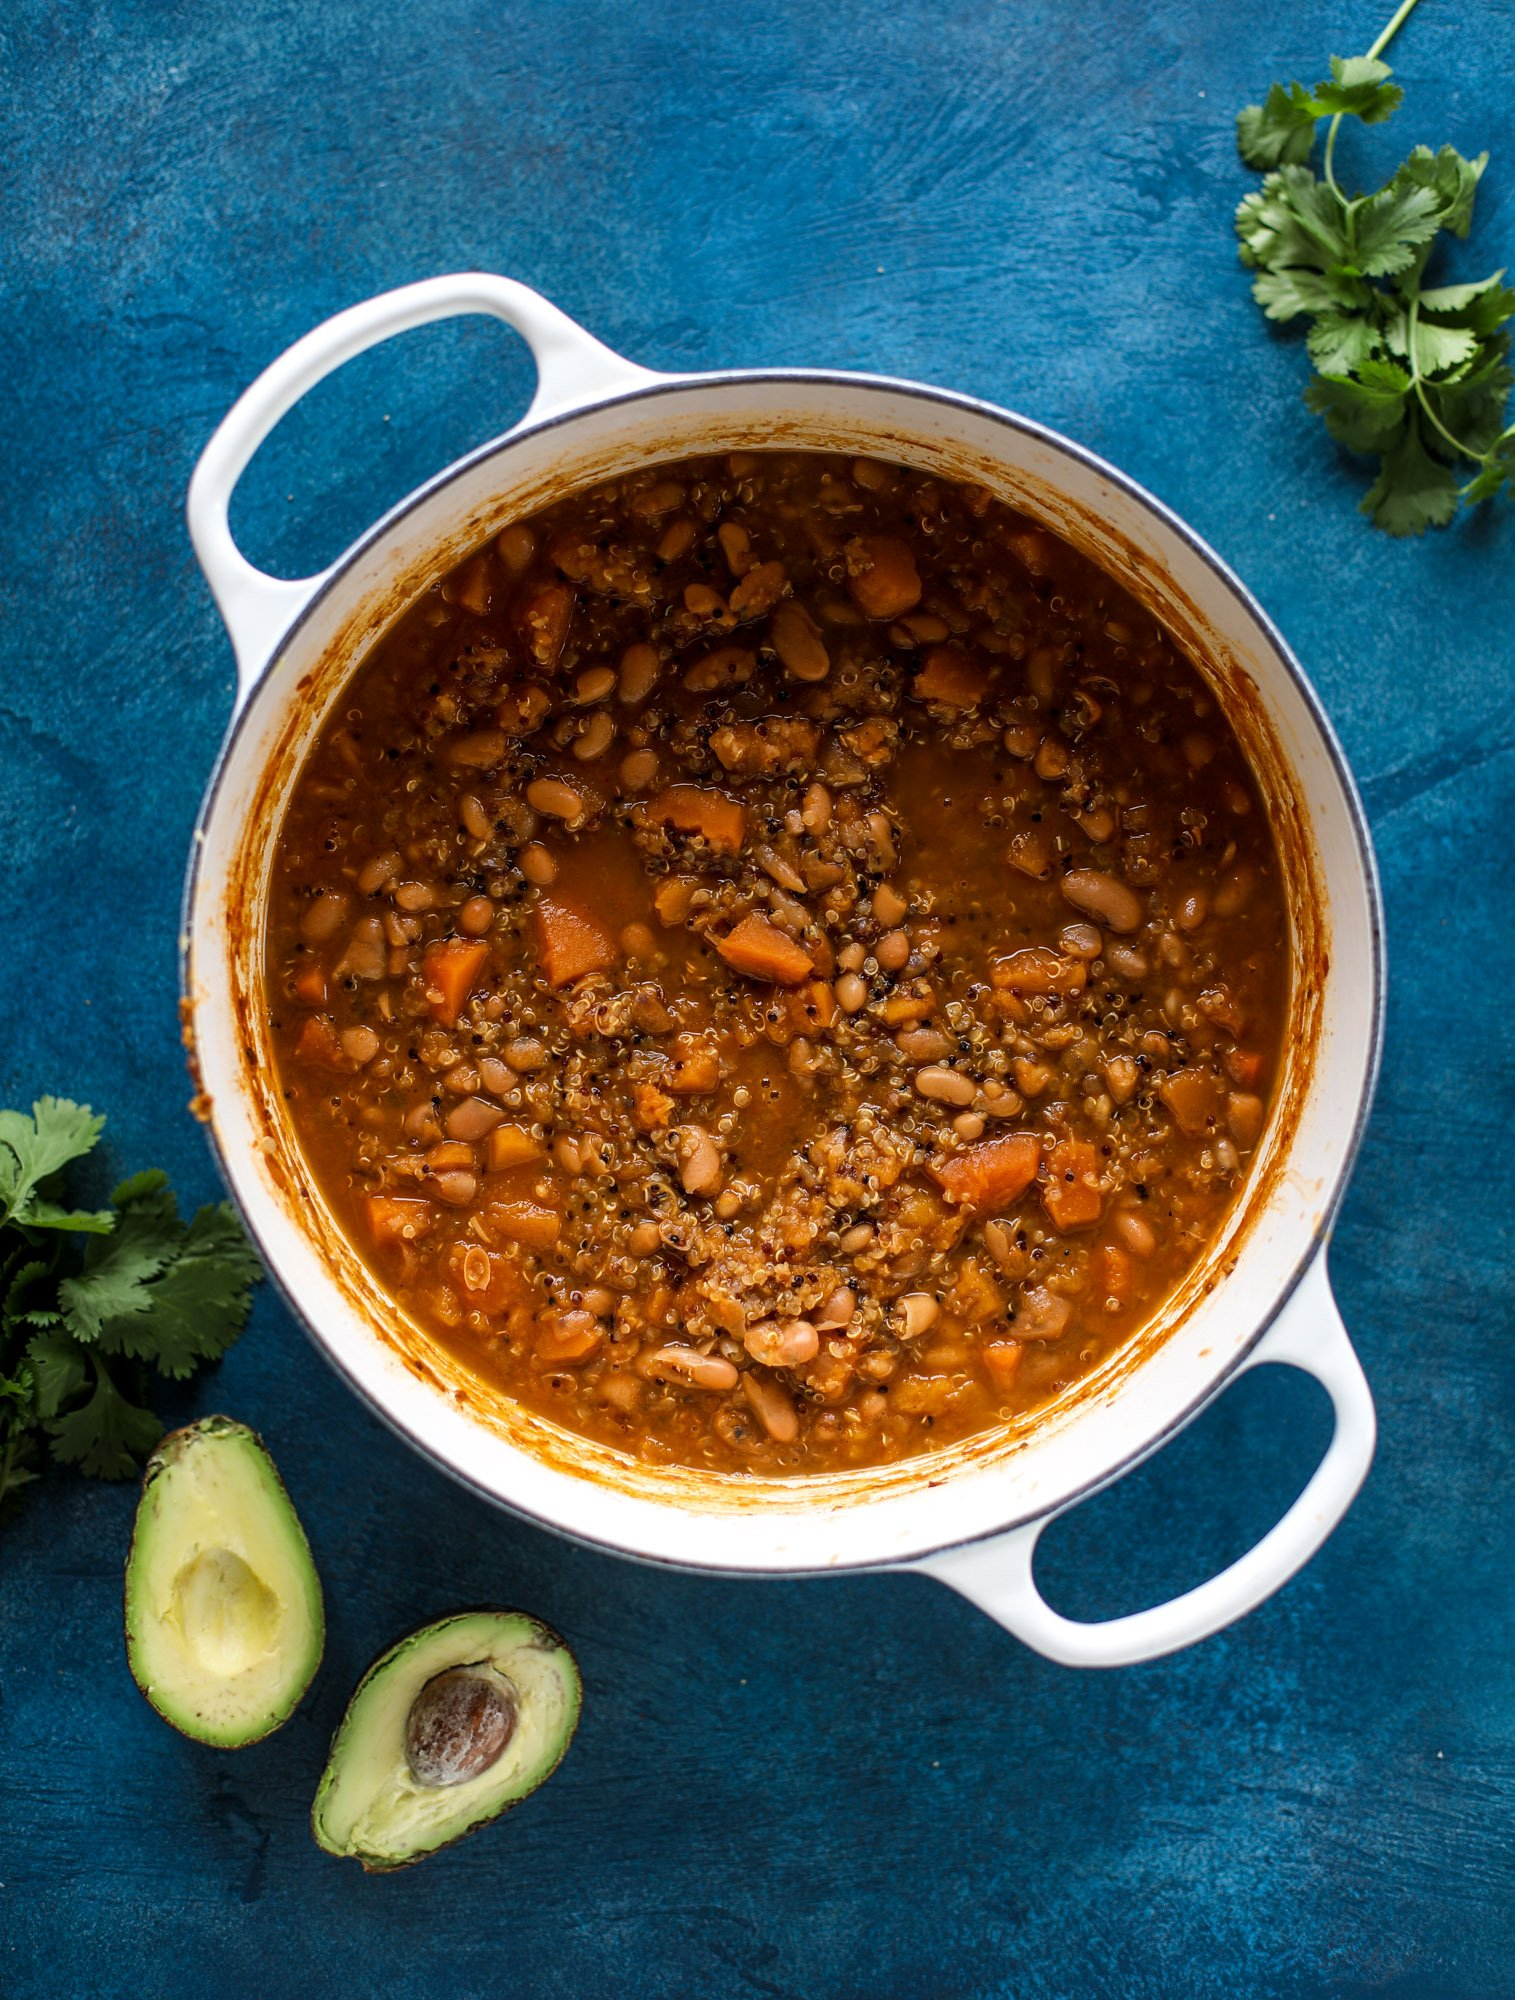 This butternut squash chili is super satisfying and delicious! It's made with pinto beans and quinoa, comes together quickly and is filling and perfect to reheat for lunches. Everything you want in a vegetarian chili! I howsweeteats.com #butternutsquash #chili